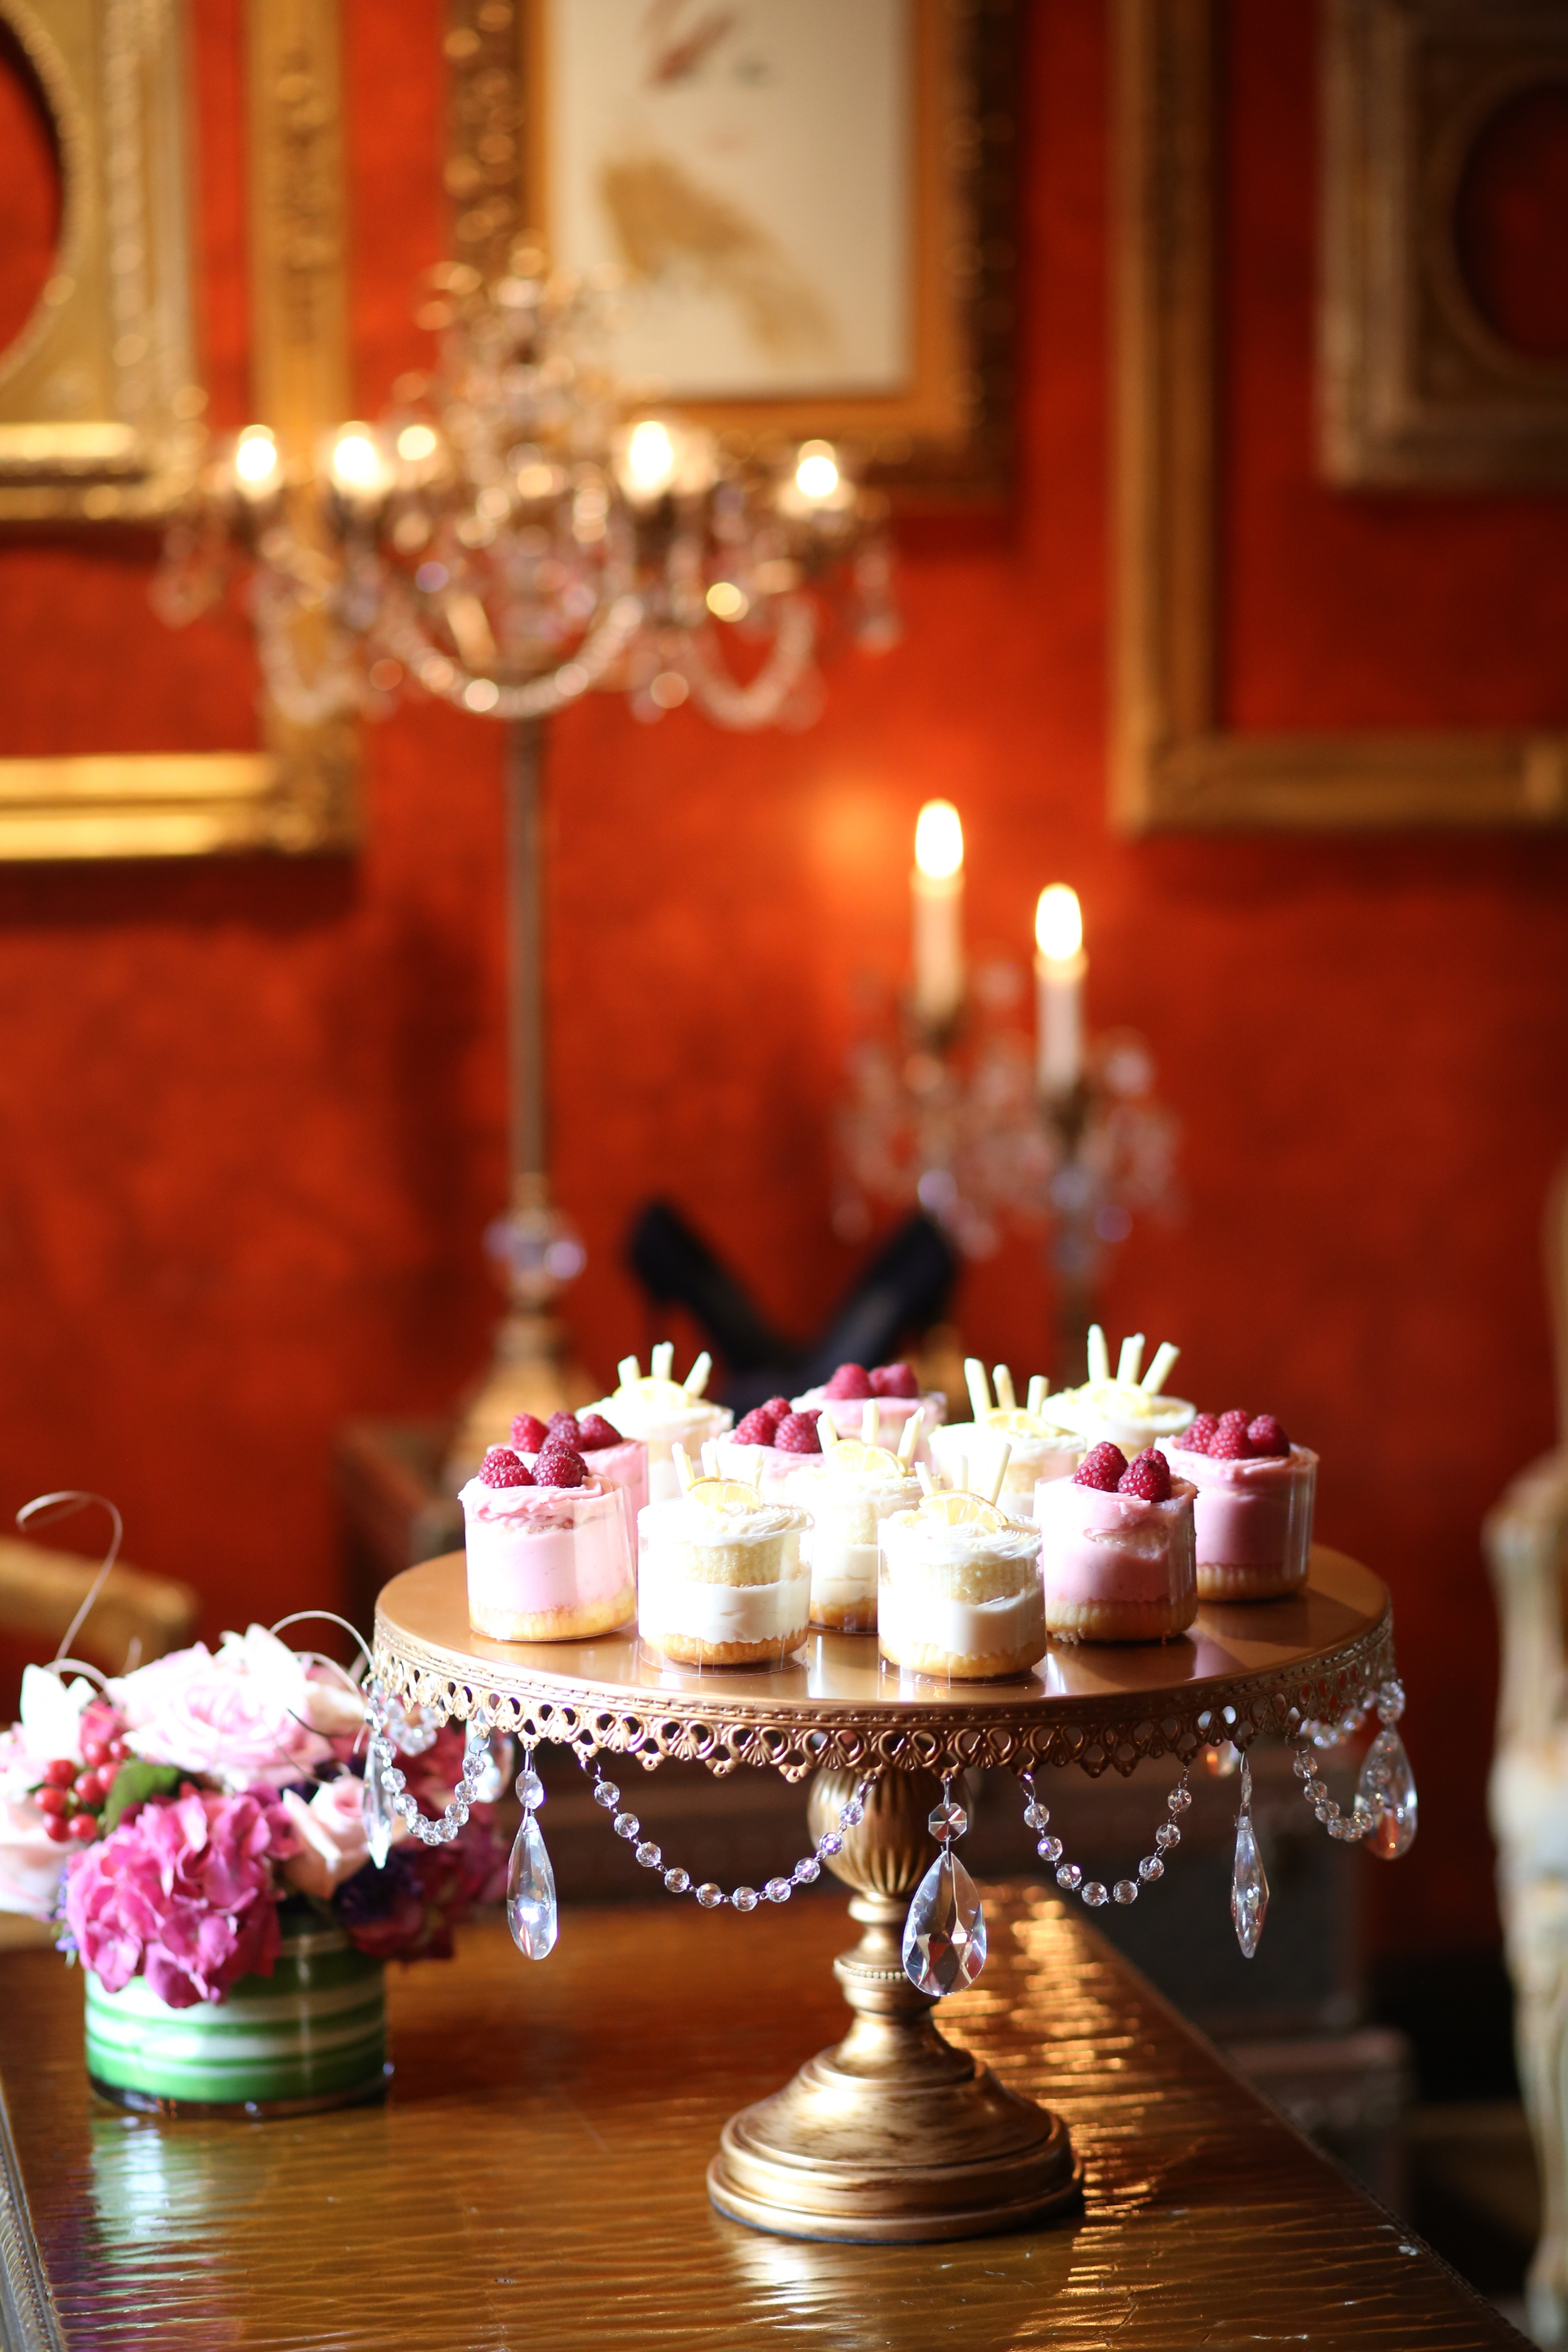 opulenttreasures.com   Opulent Treasures   Cake and Dessert Plates and Stands   Candelabras for Weddings and Events   Wedding and Celebration Cakes